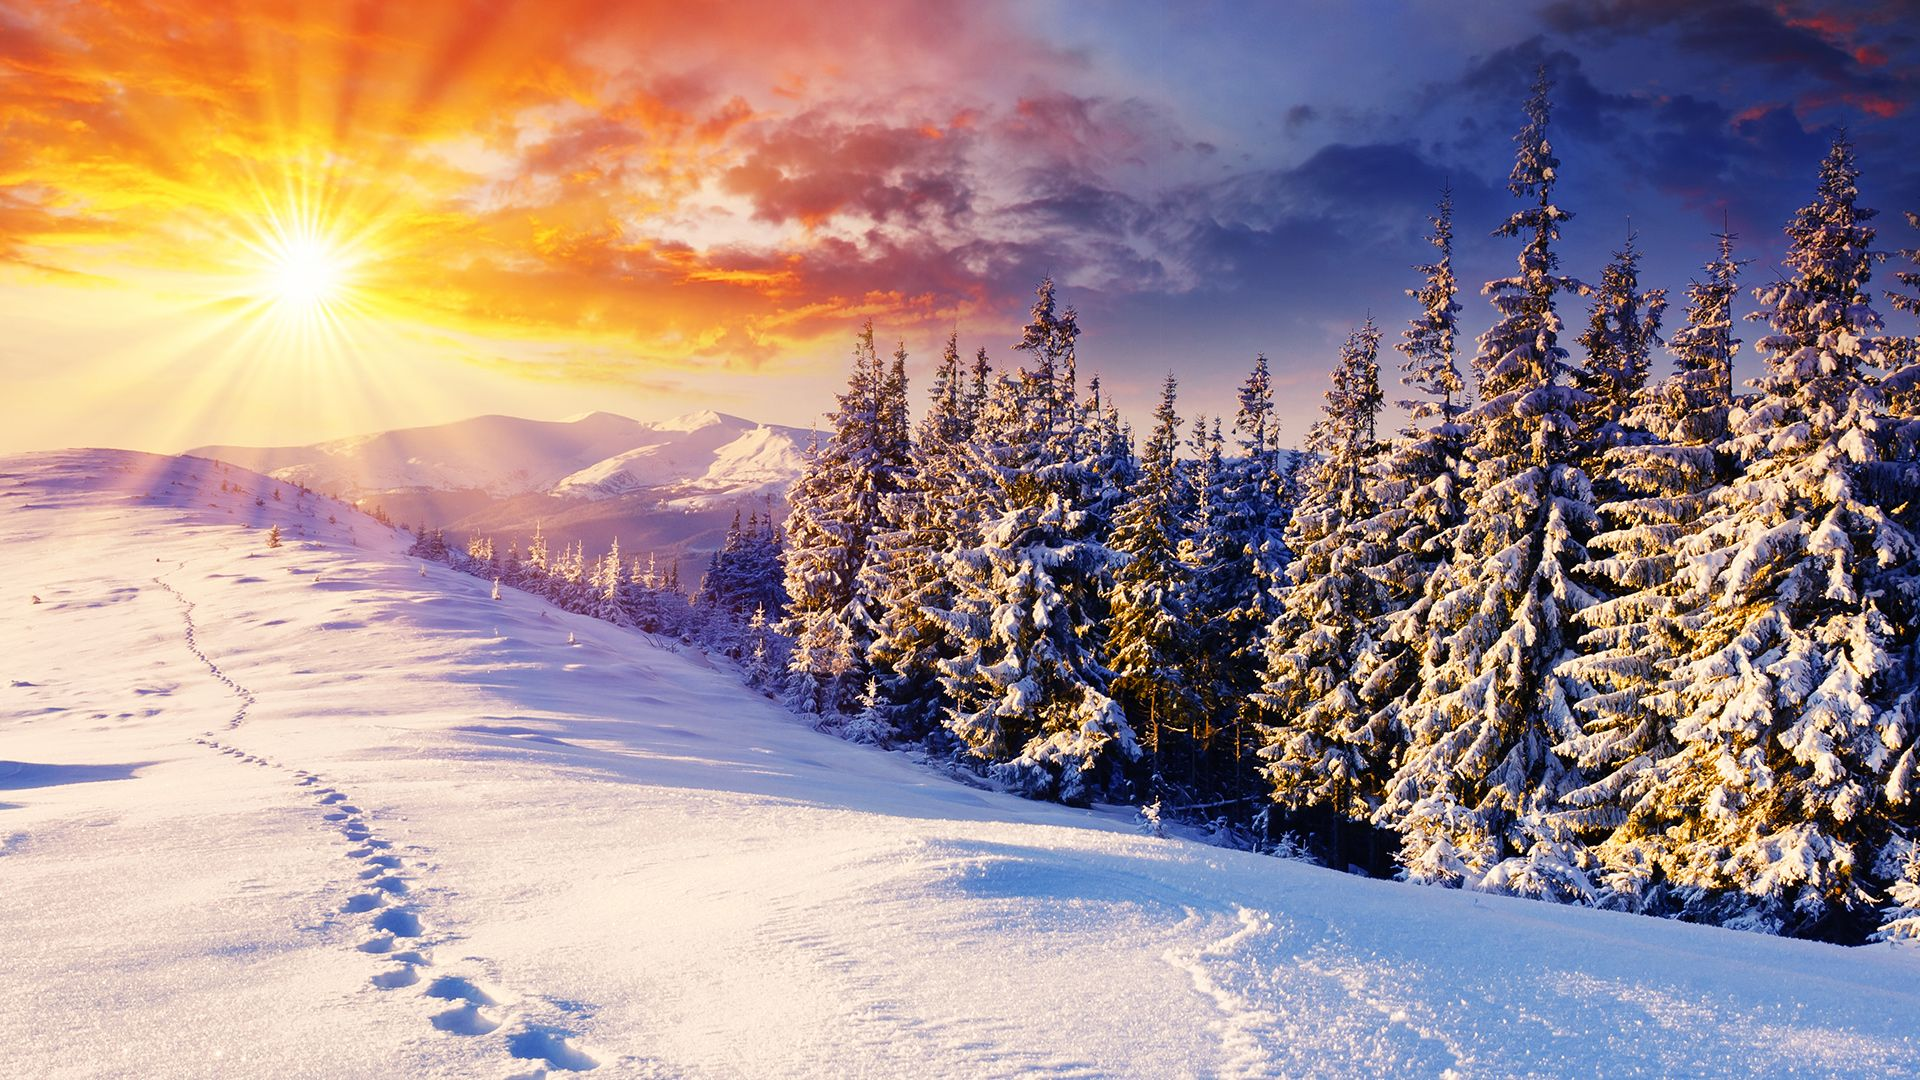 Download Wallpaper High Quality Winter - 1042e218cc7a352c850a559ae37ffc92  Pictures_512095.jpg